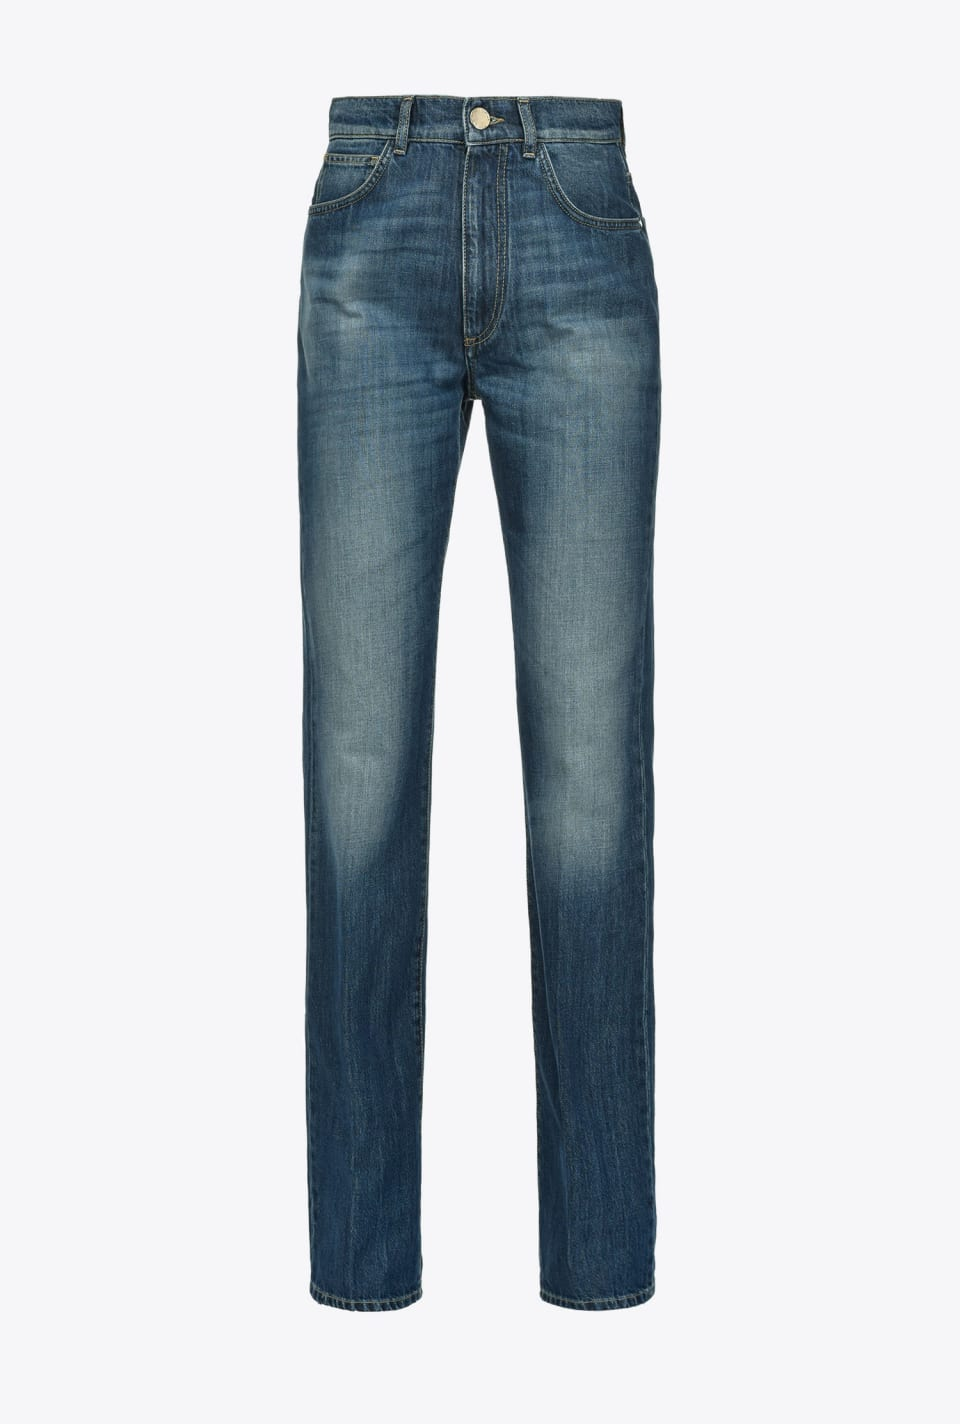 Snug-fitting straight jeans - Pinko